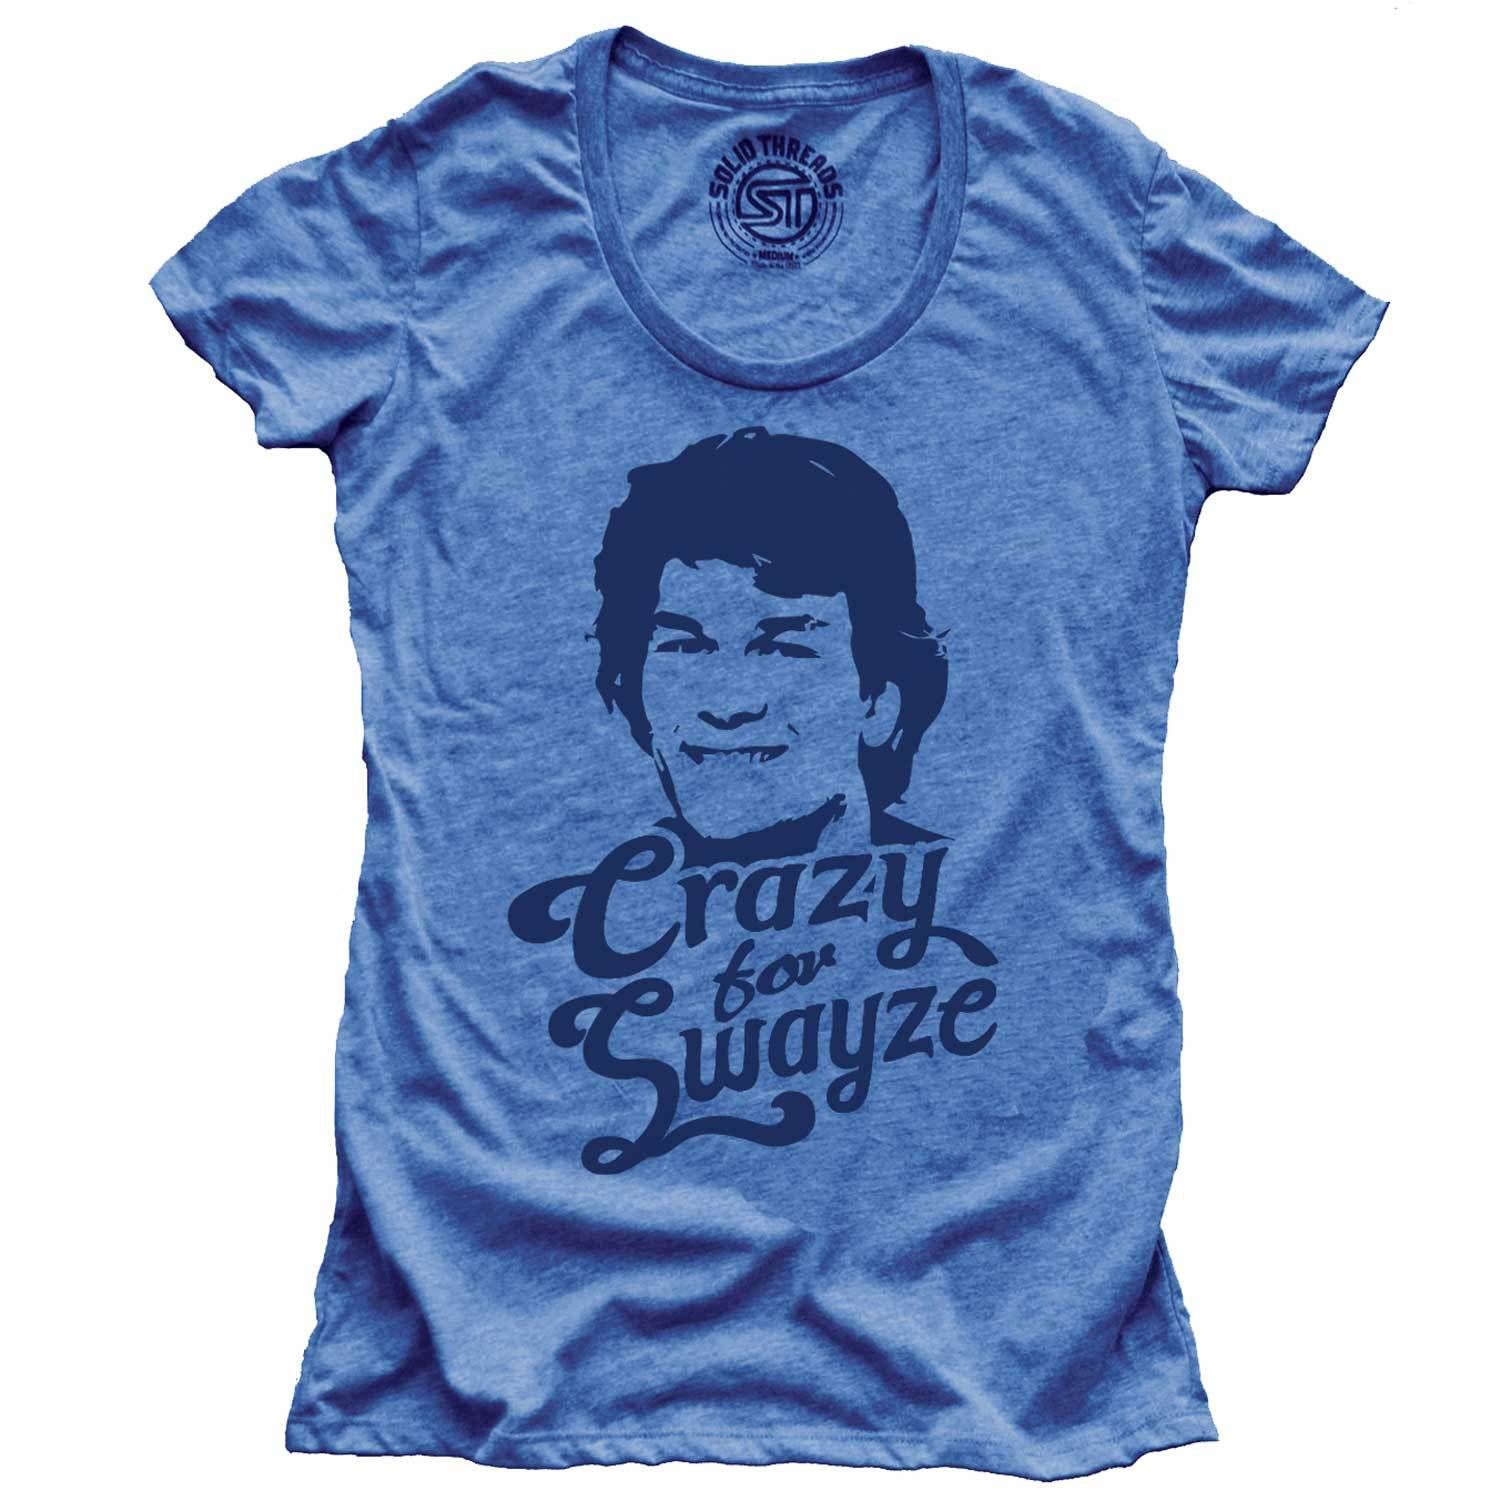 Women's Crazy For Swayze T-shirt